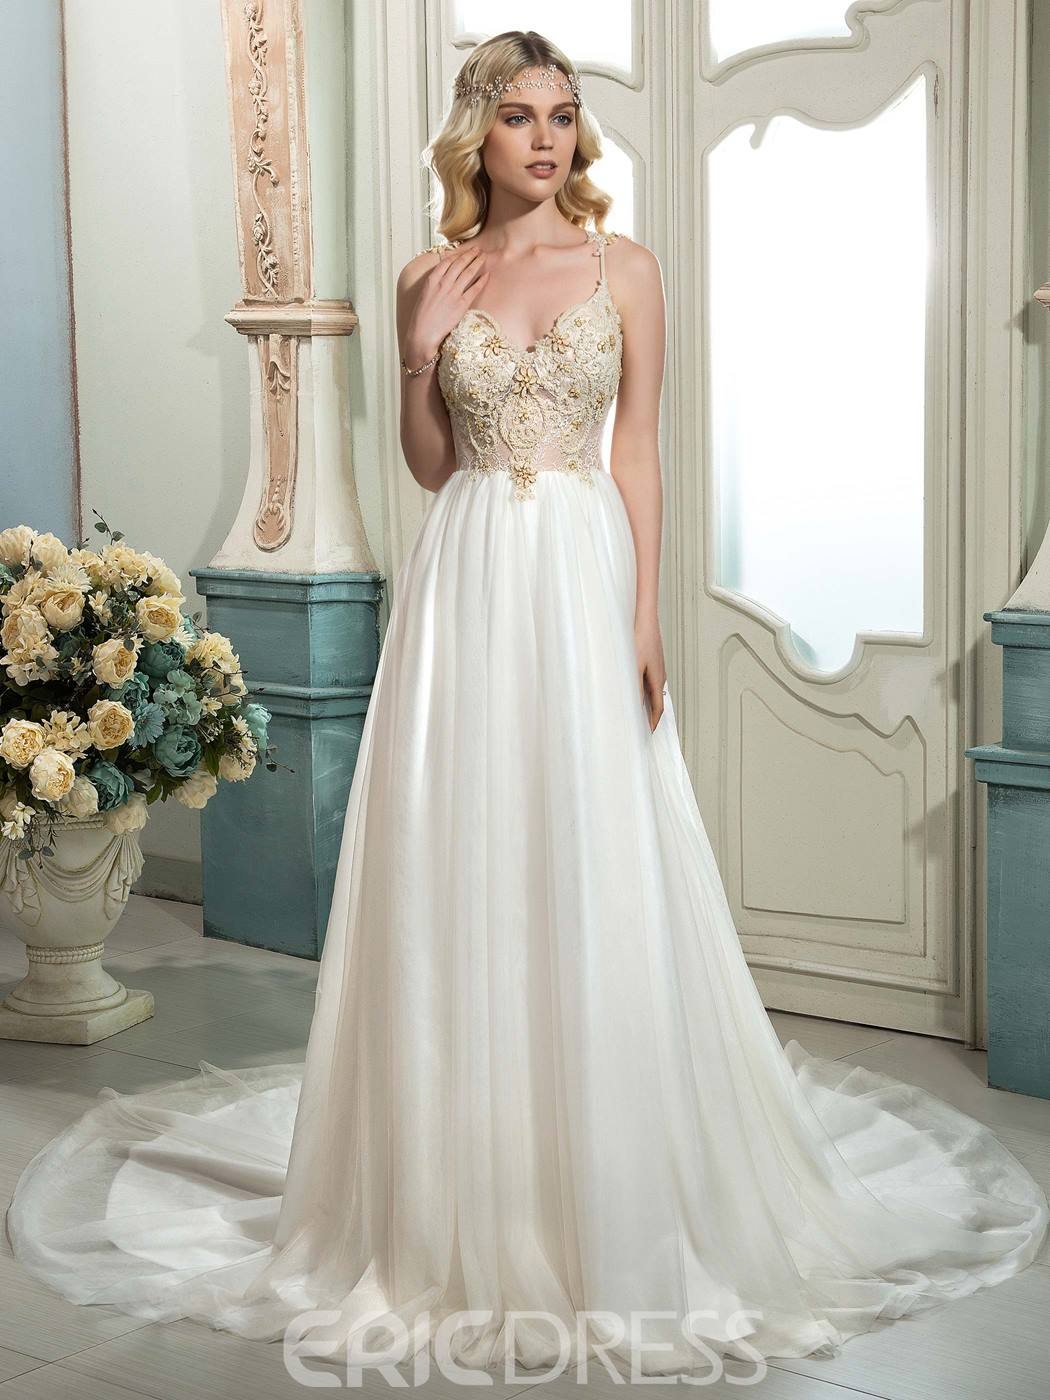 Ericdress beautiful spaghetti straps beaded a line wedding for Cheap but beautiful wedding dresses